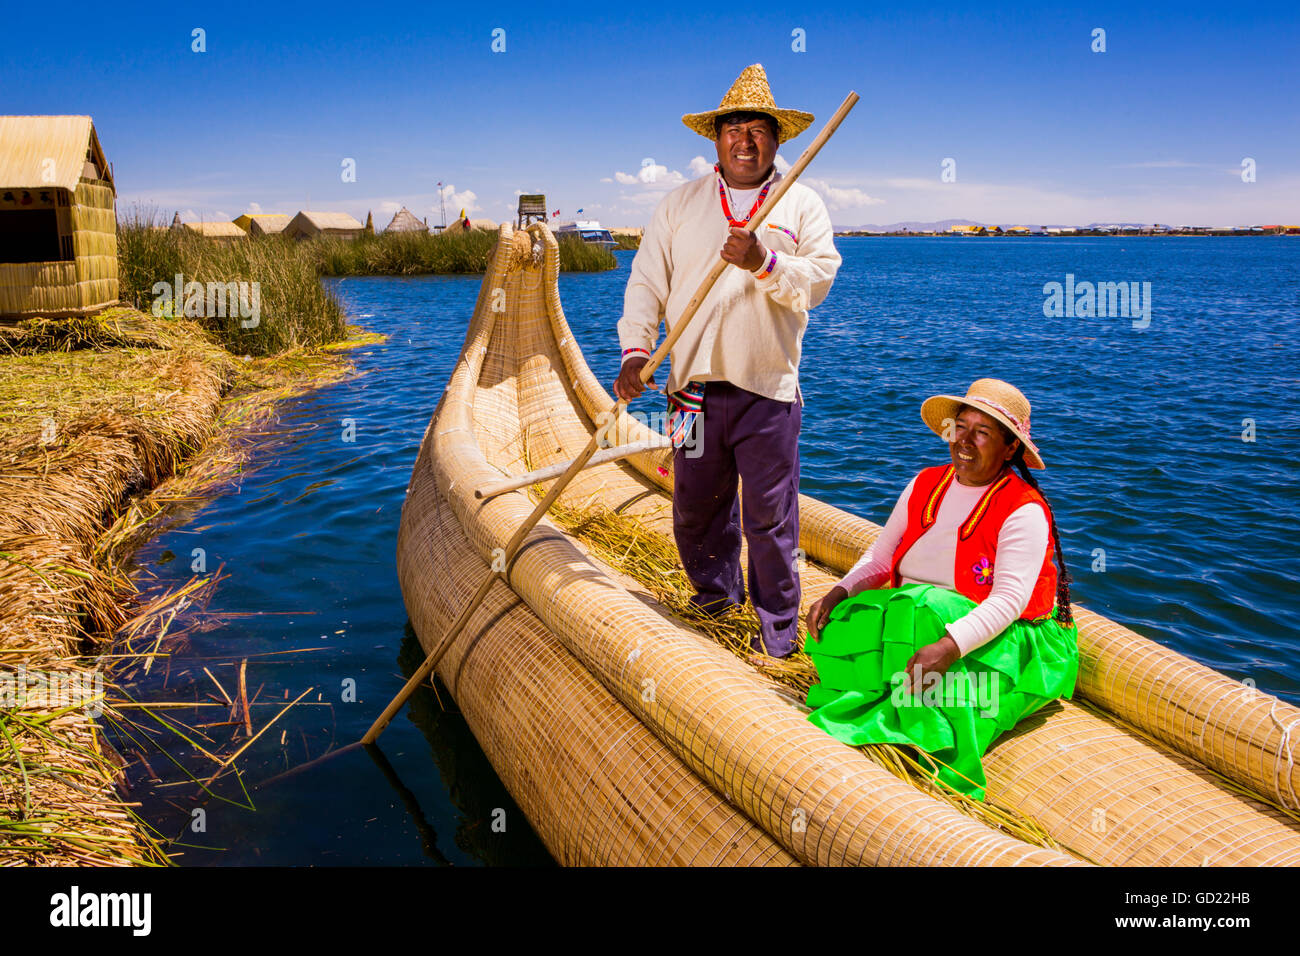 Quechua Indian couple on Floating Grass islands of Uros, Lake Titicaca, Peru, South America - Stock Image